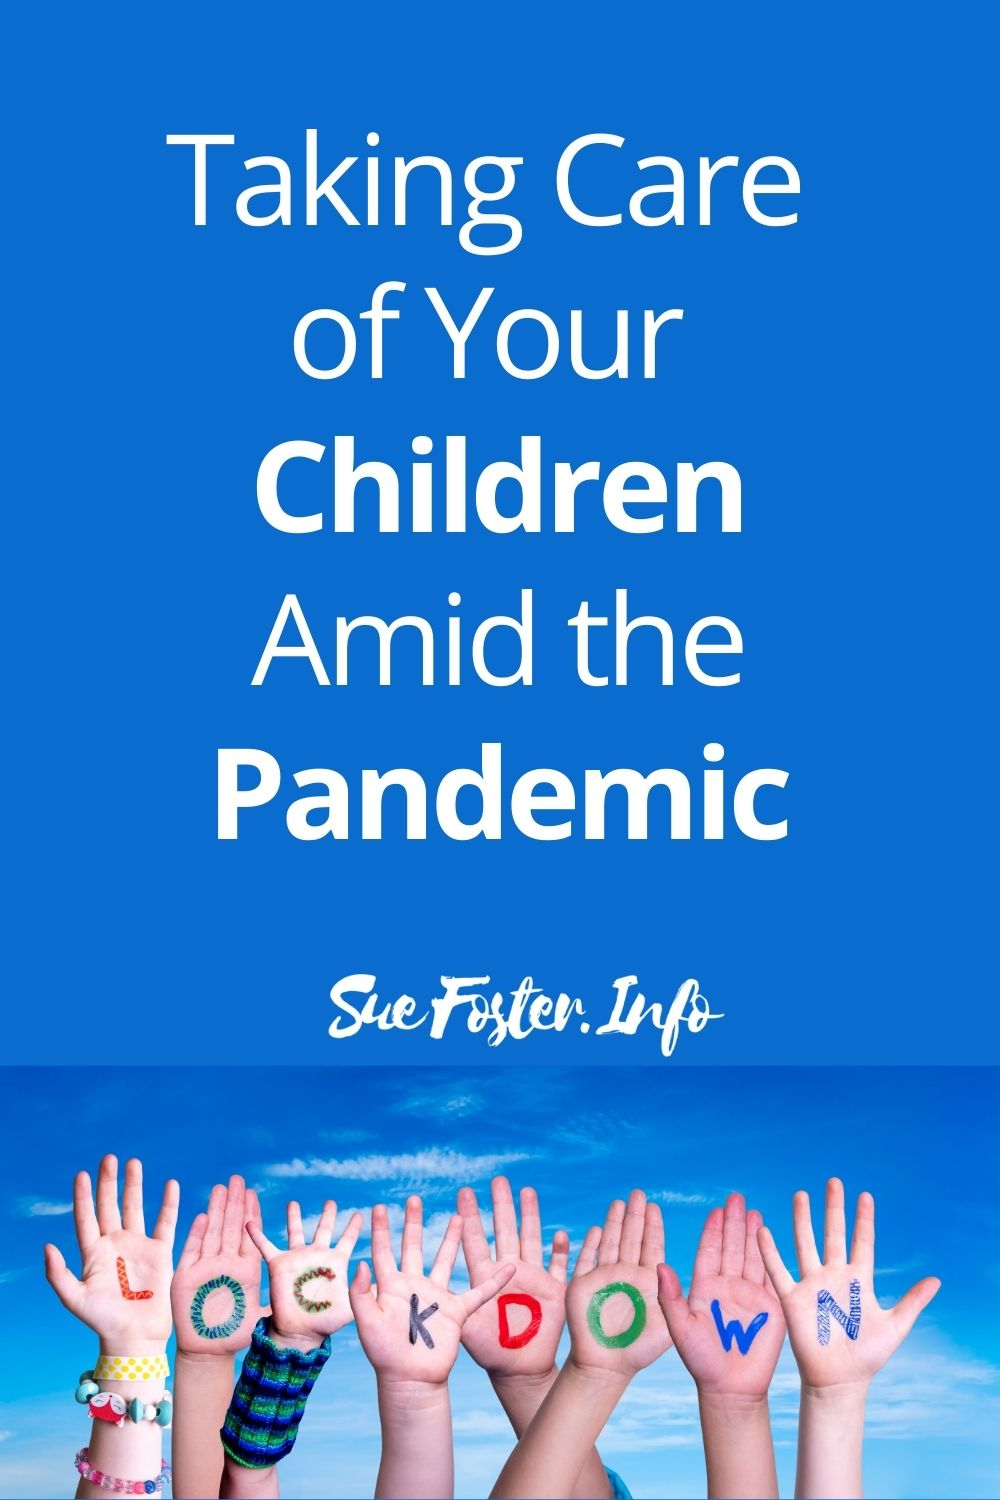 Taking Care of Your Children Amid the Pandemic. It may be an unprecedented time, but you can make it a little better for your children.